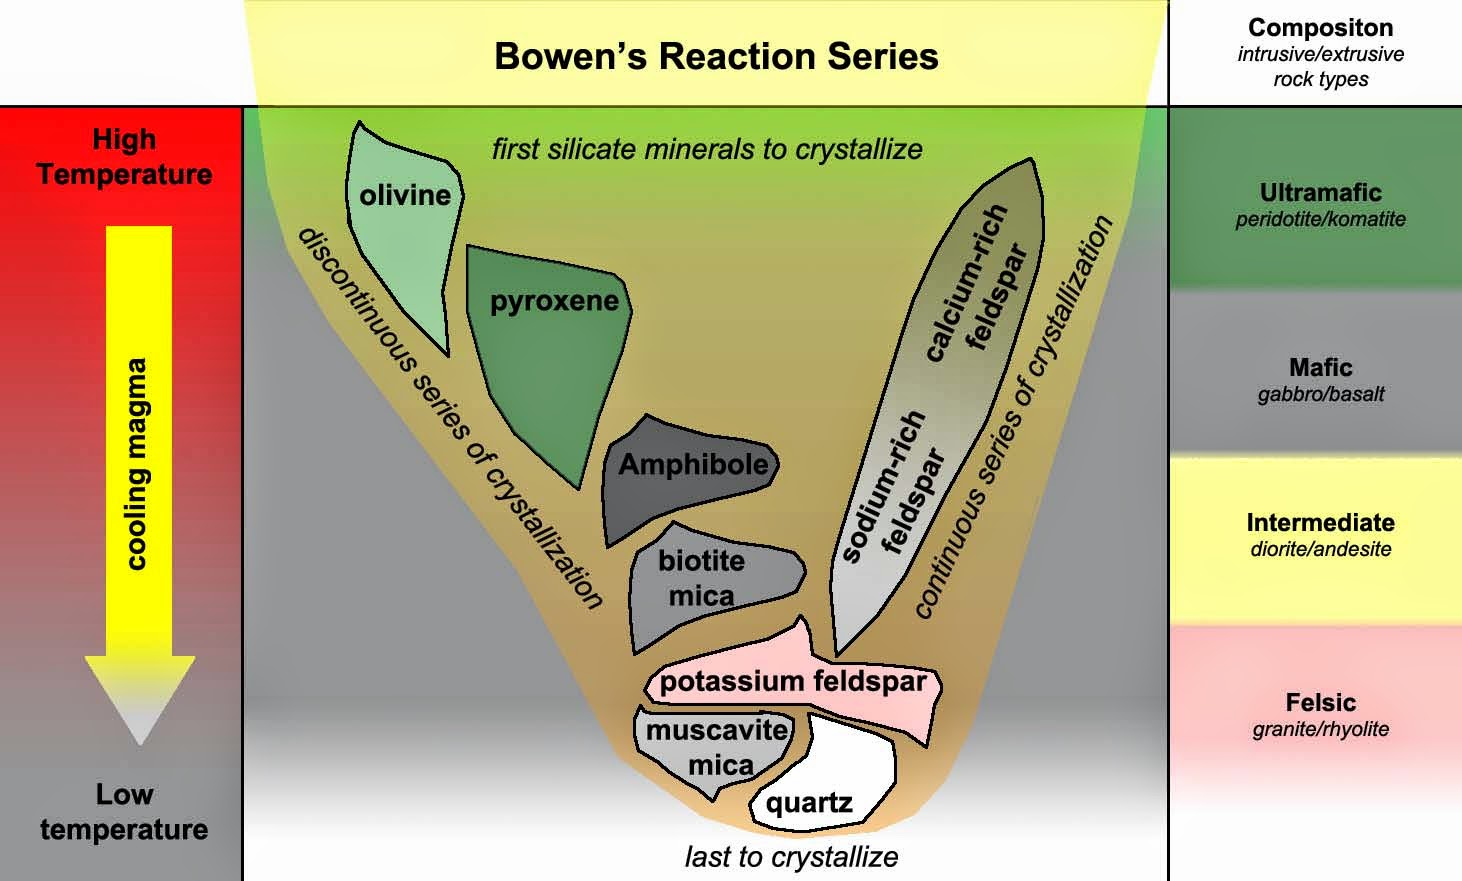 hight resolution of how does bowen s reaction series relate to the classification of igneous rock